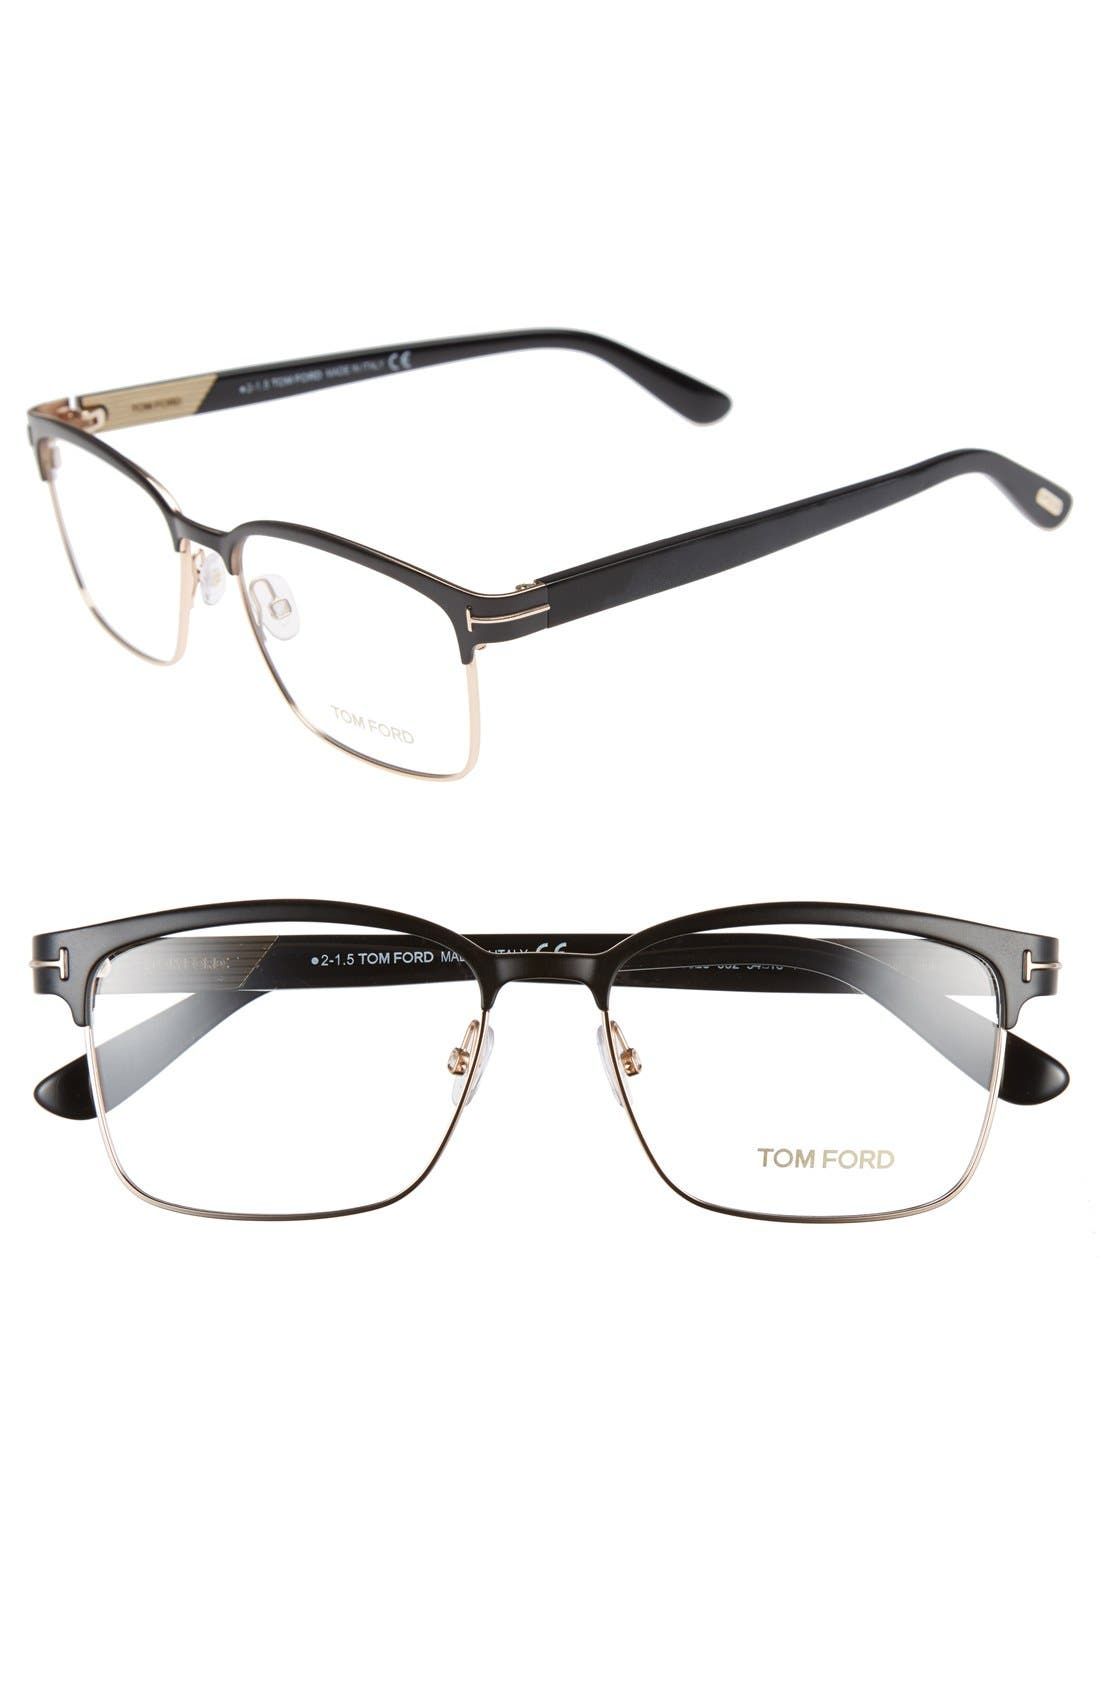 54mm Optical Glasses,                         Main,                         color, MATTE BLACK/ SHINY ROSE GOLD